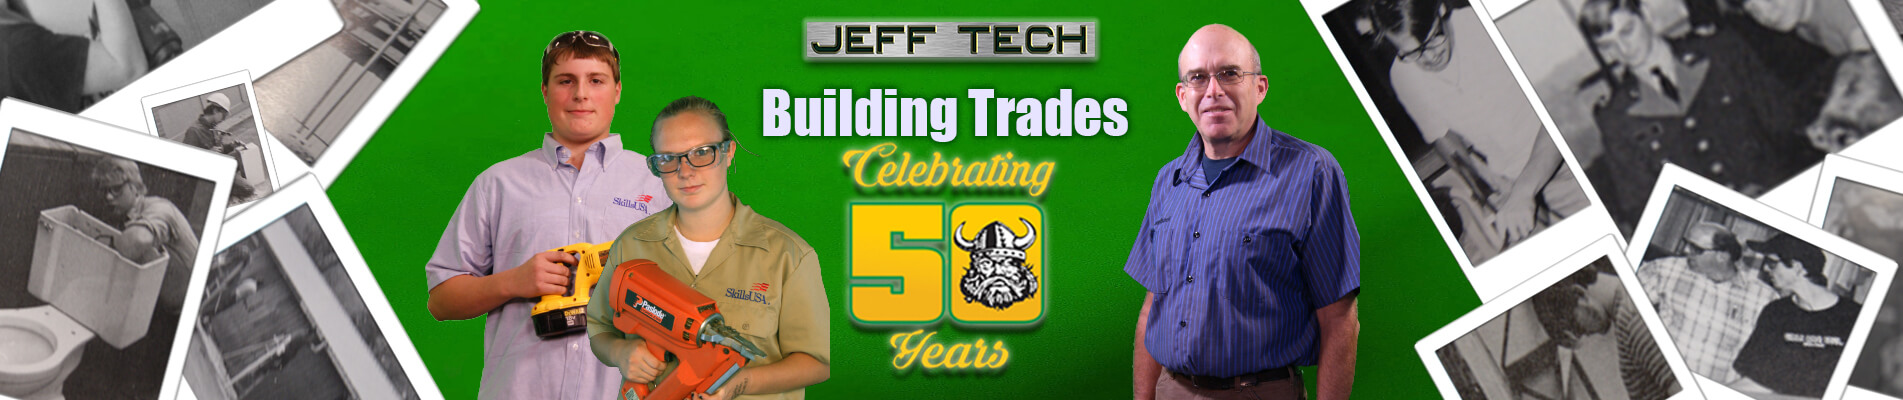 Jeff Tech Building Trades Celebrating 50 Years. Learn more about our CTE Programs.